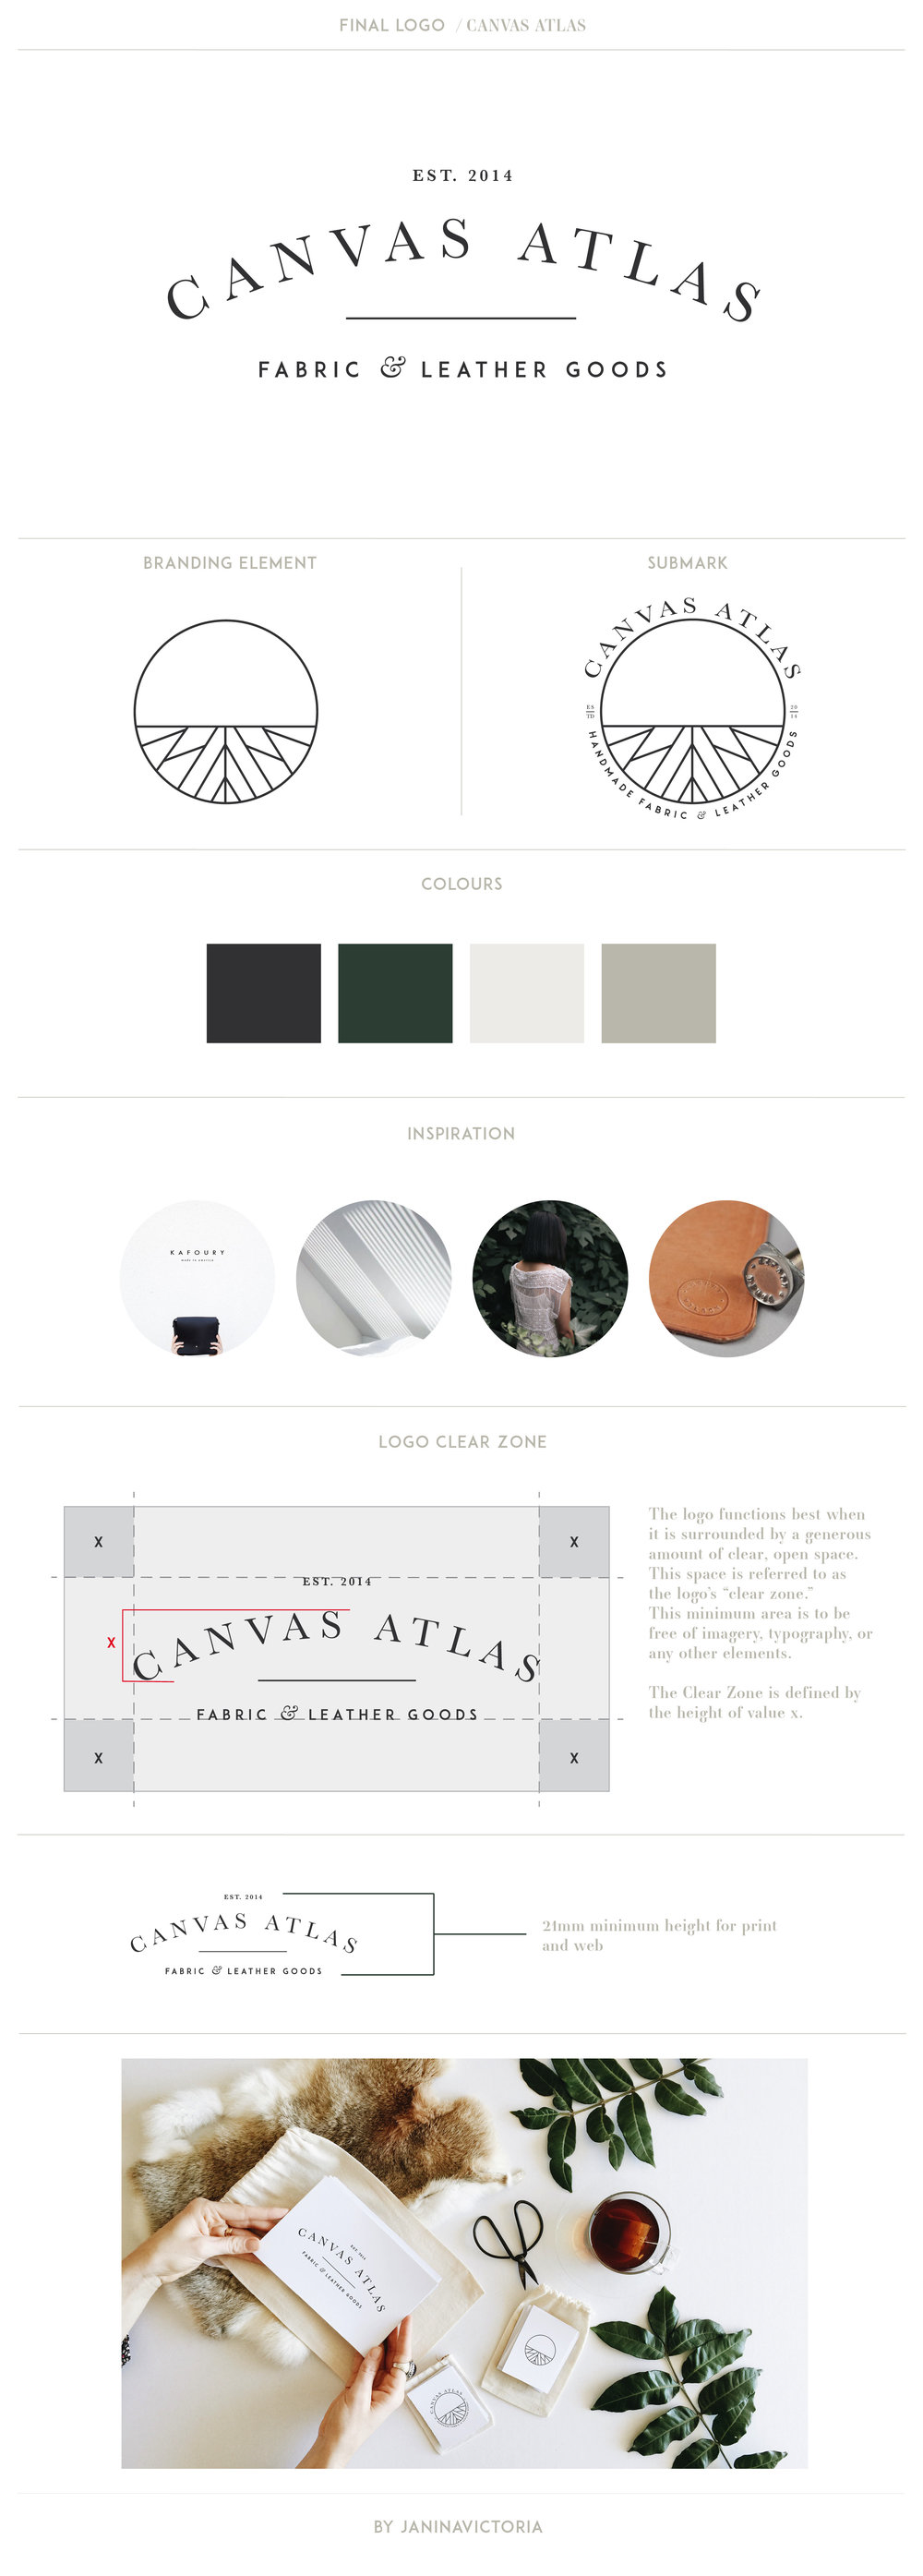 CANVAS-ATLAS_Branding3.jpg